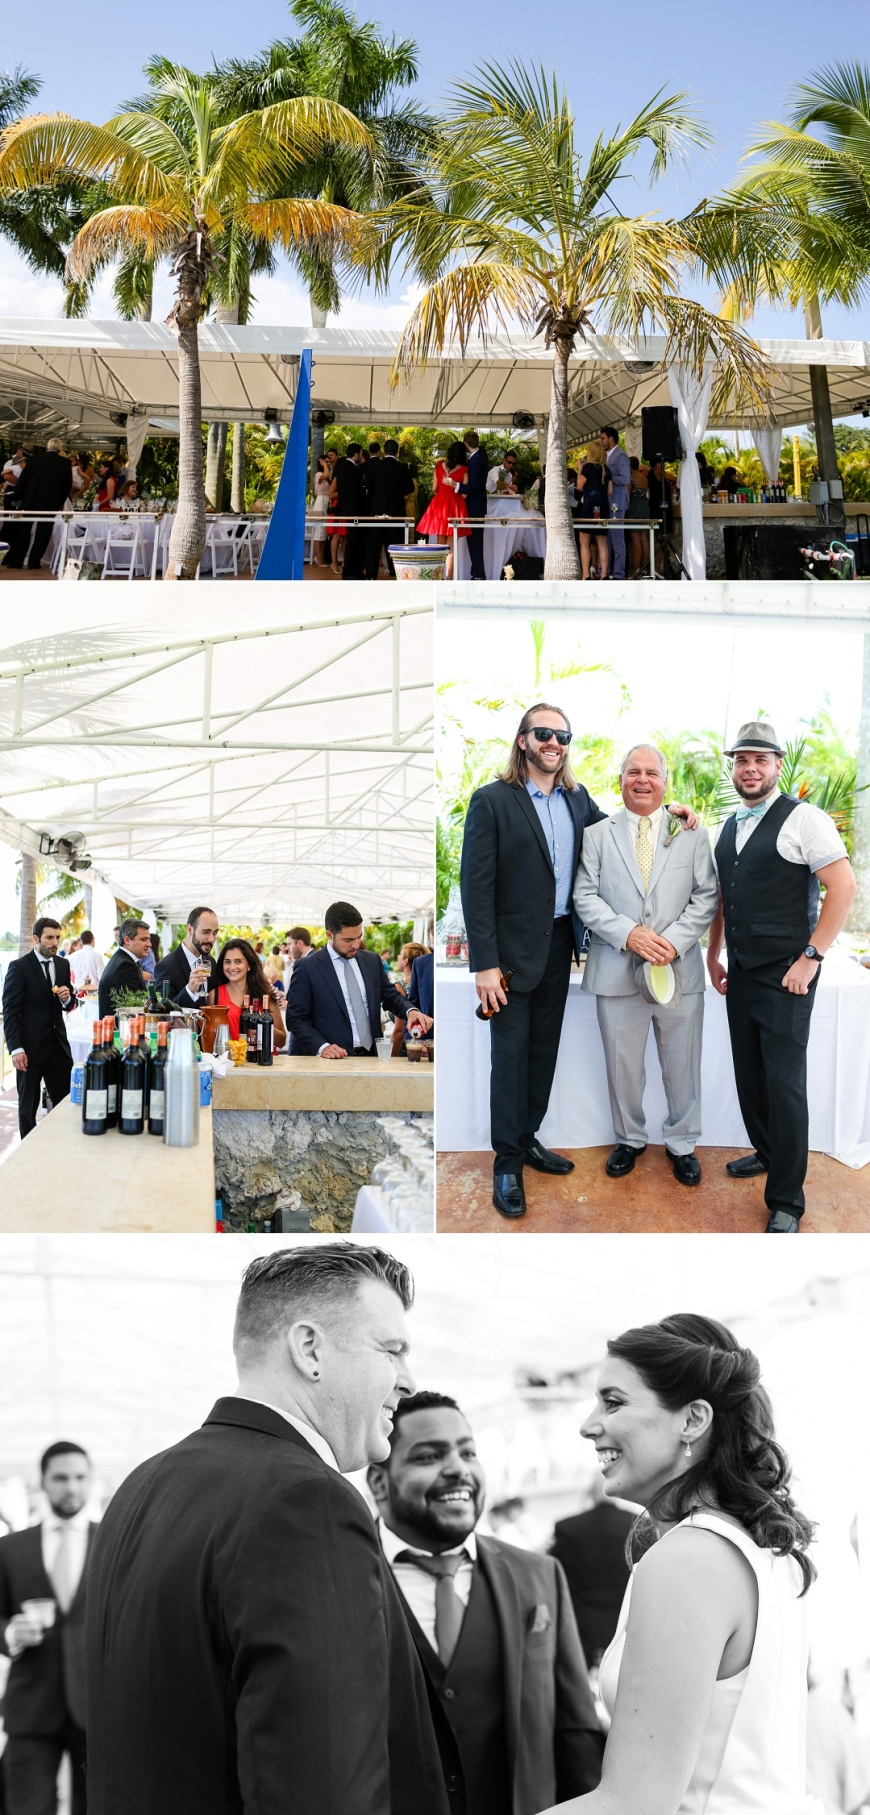 Royal-Palm-Island-Miami-Wedding-Photographer_1054.jpg